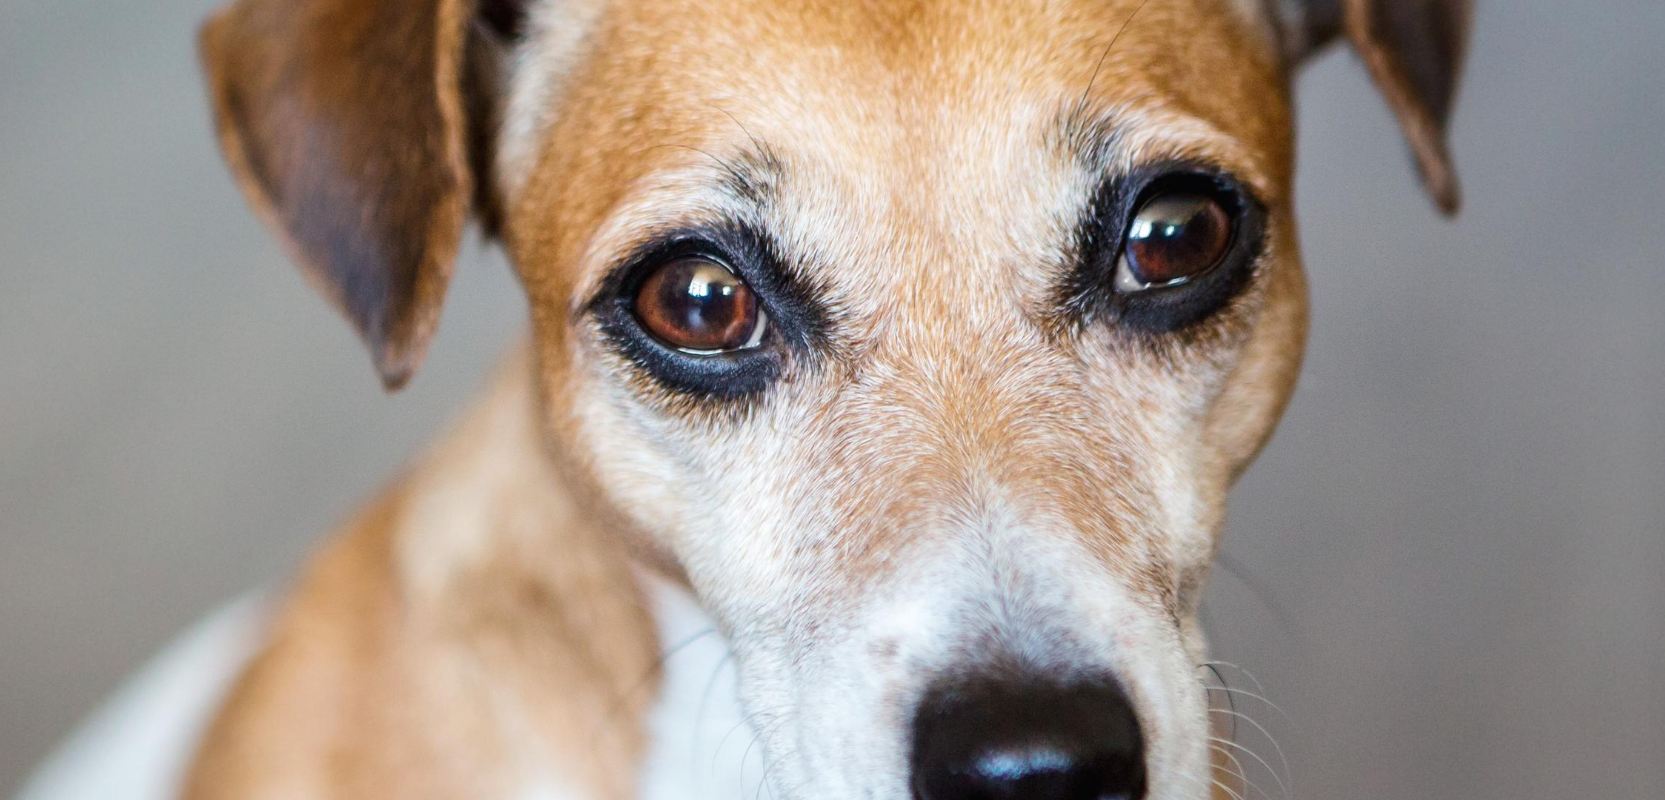 A brown-eyed dog looks directly at the viewer